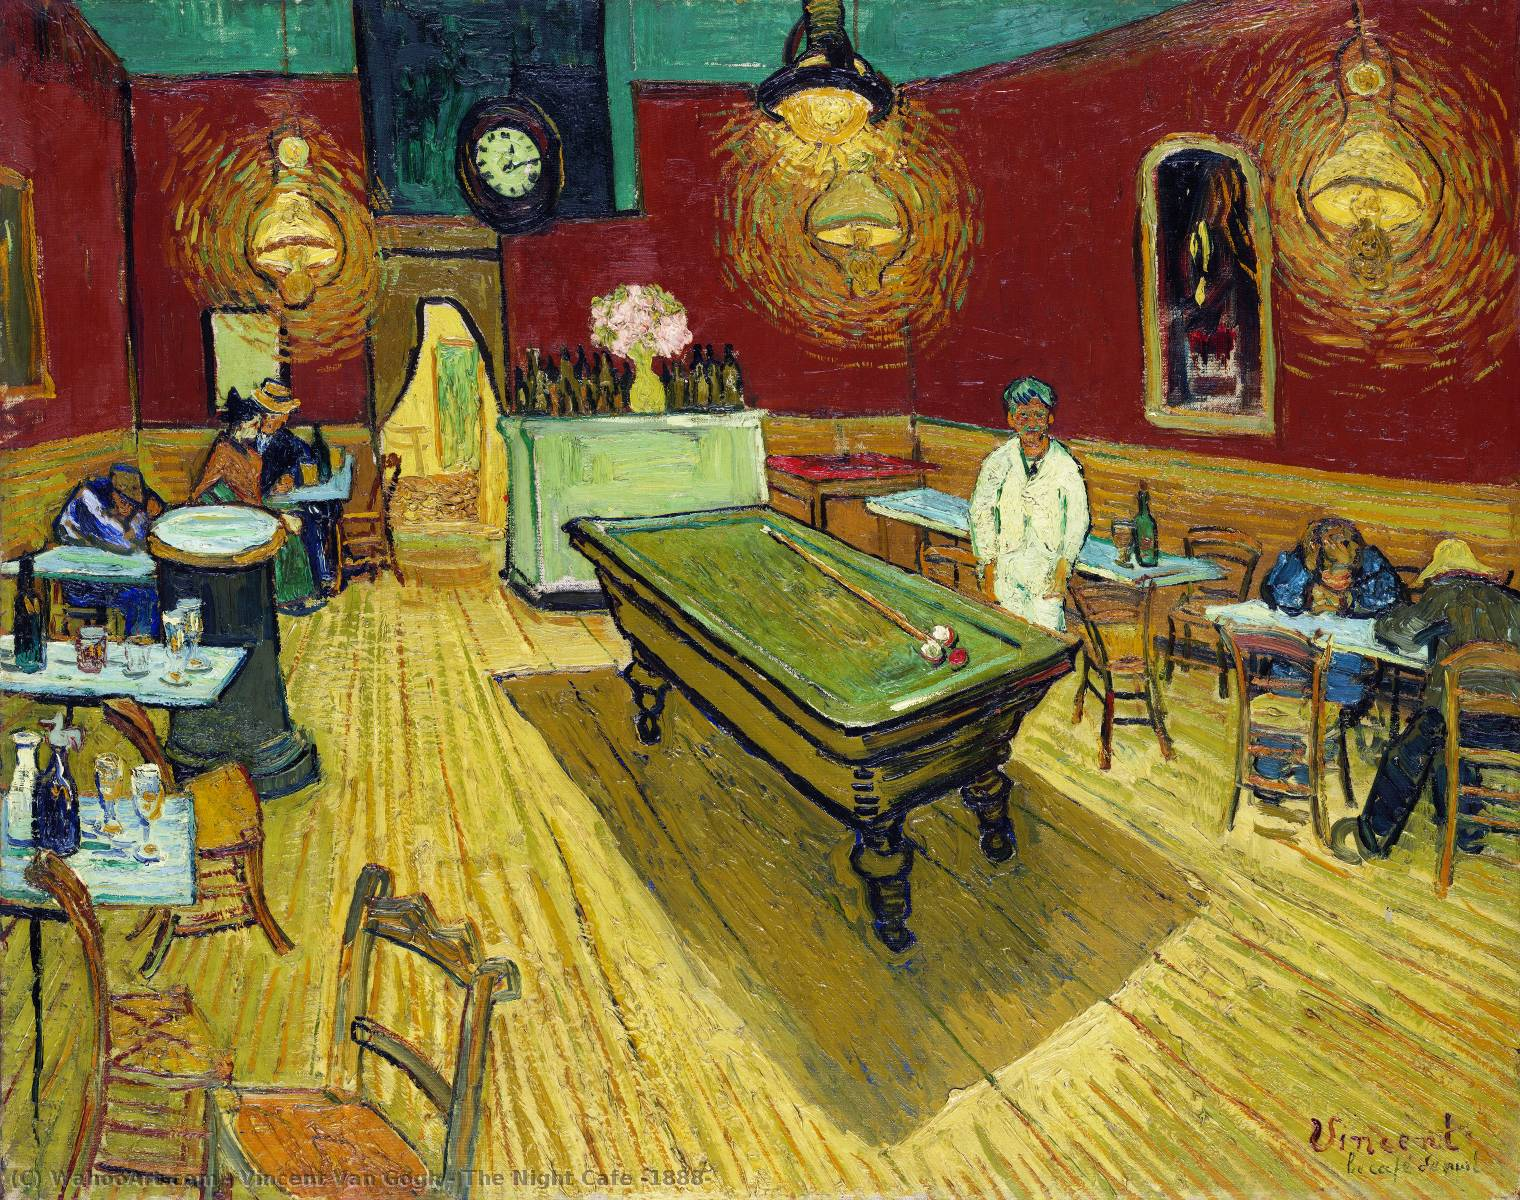 The Night Cafe [1888], 1888 by Vincent Van Gogh (1853-1890, Netherlands) | Museum Art Reproductions Vincent Van Gogh | WahooArt.com